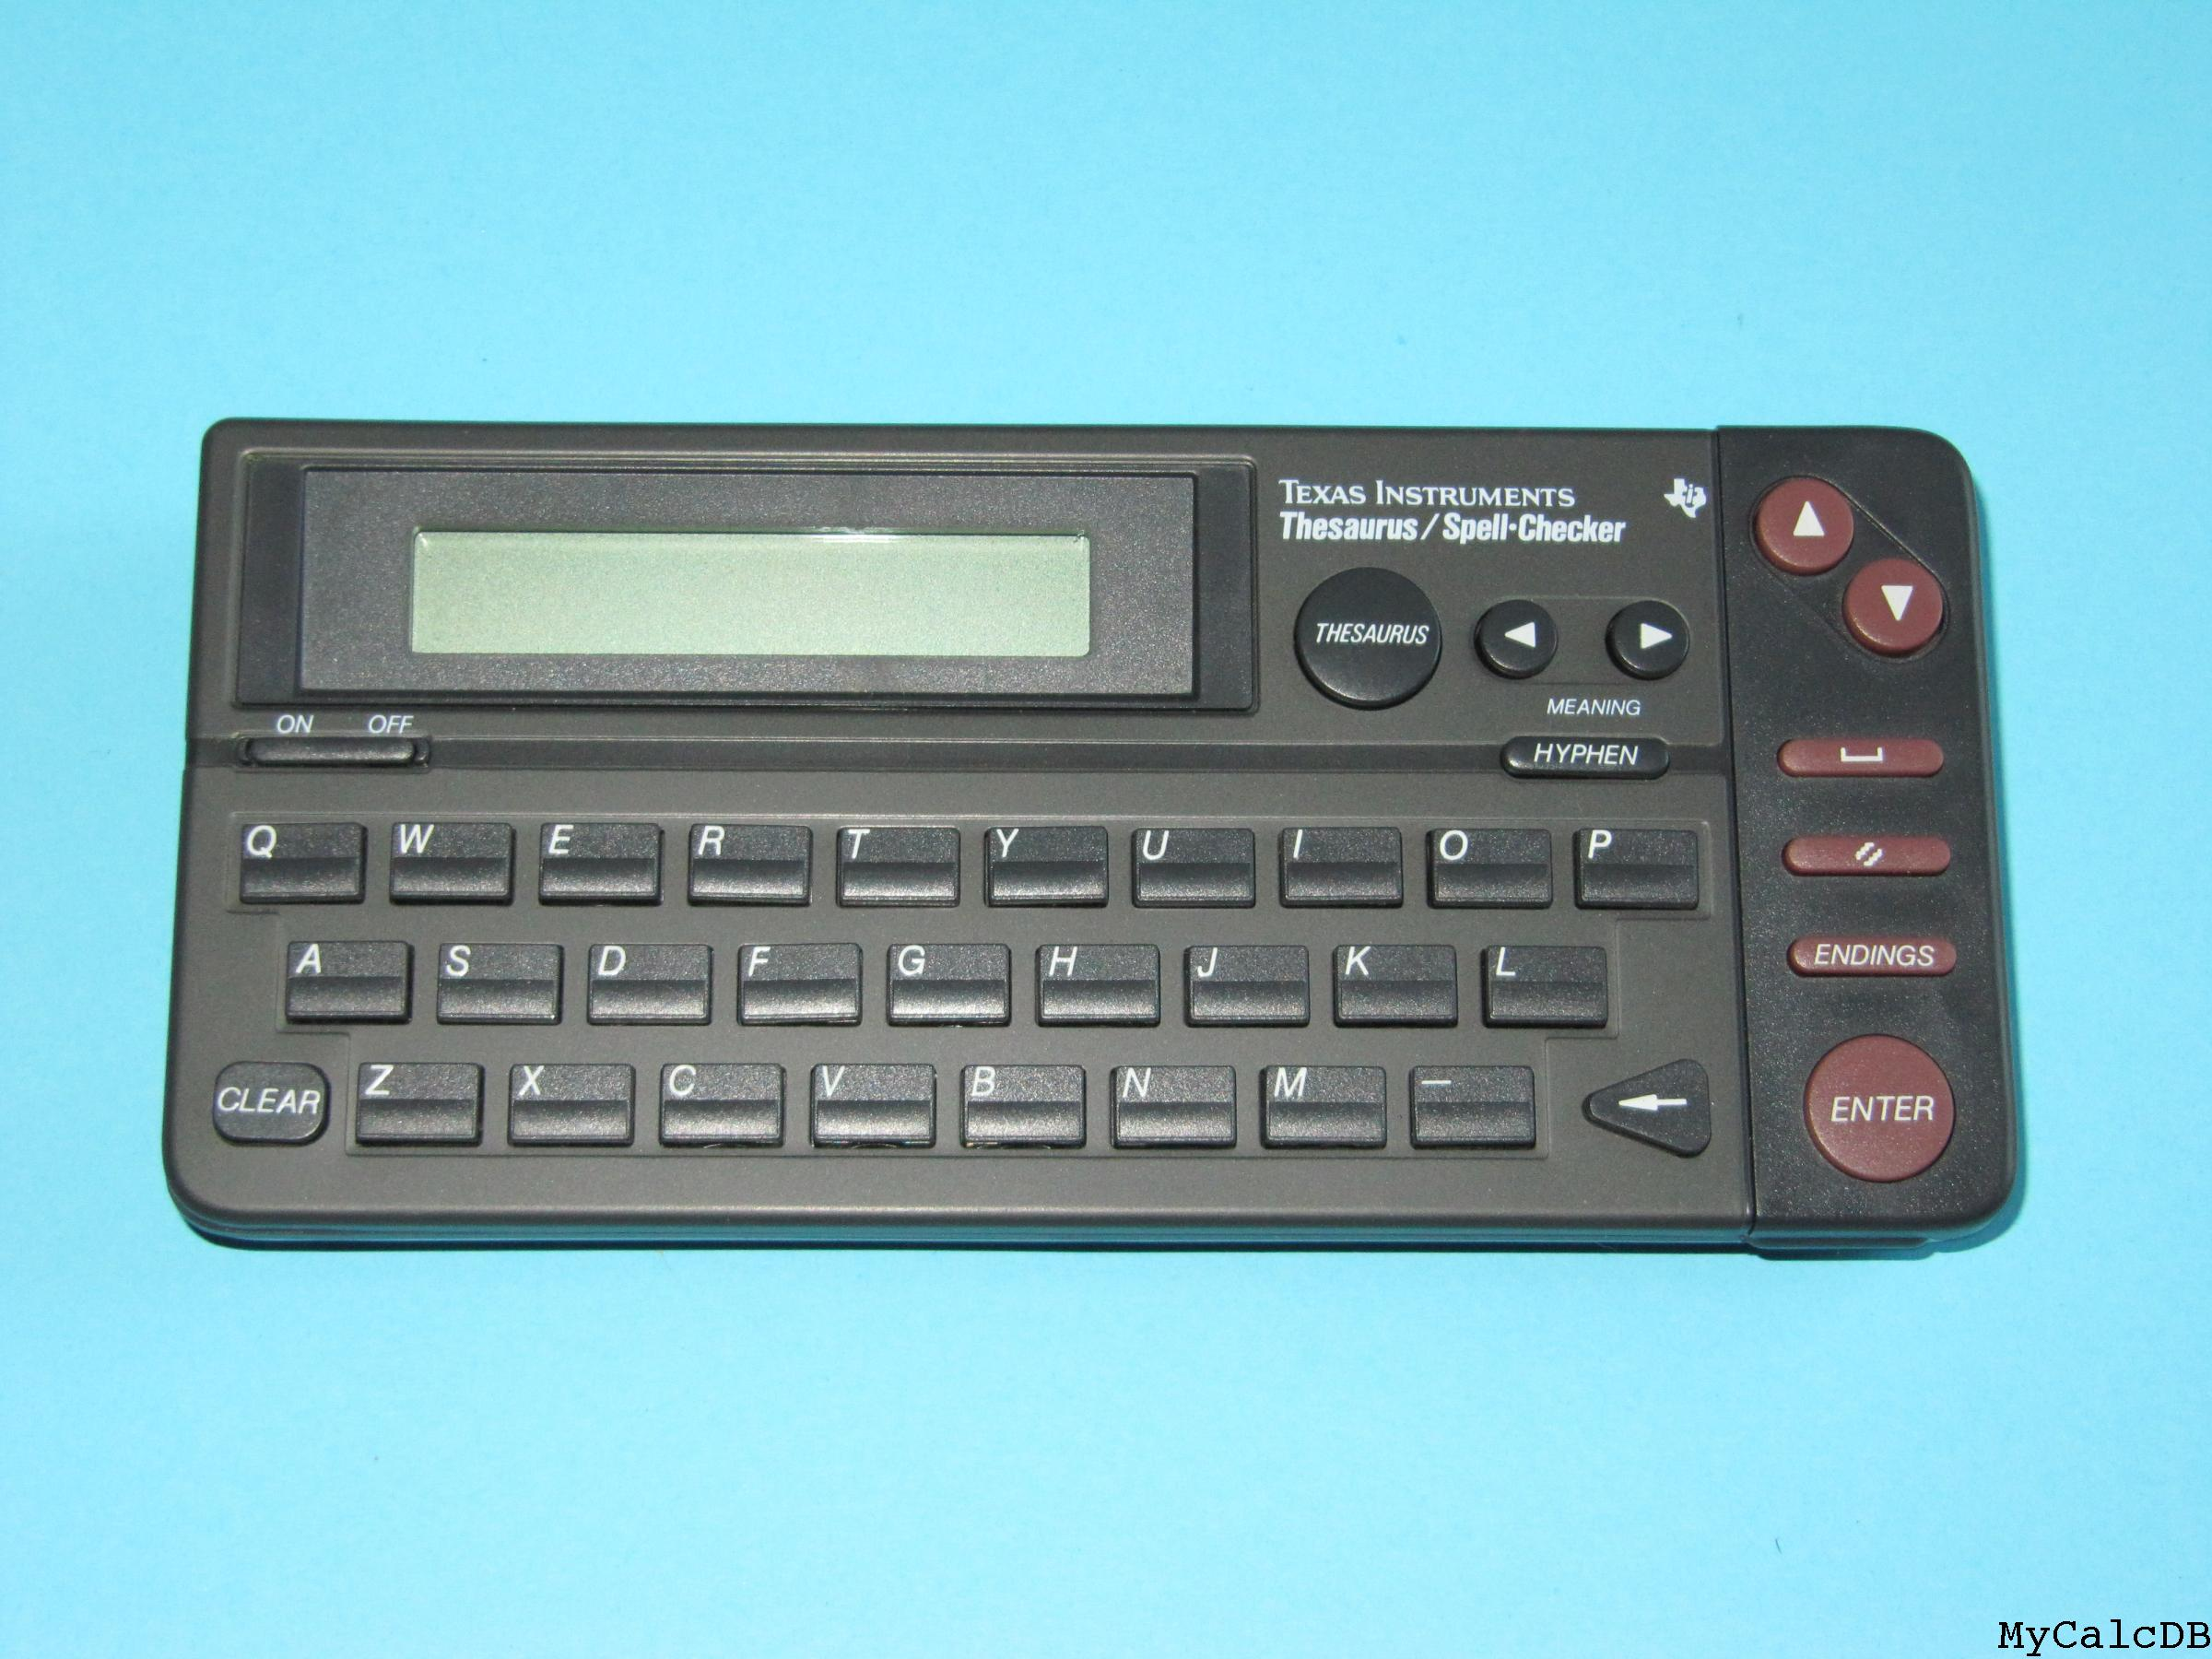 Texas Instruments Thesaurus / Spell-Checker